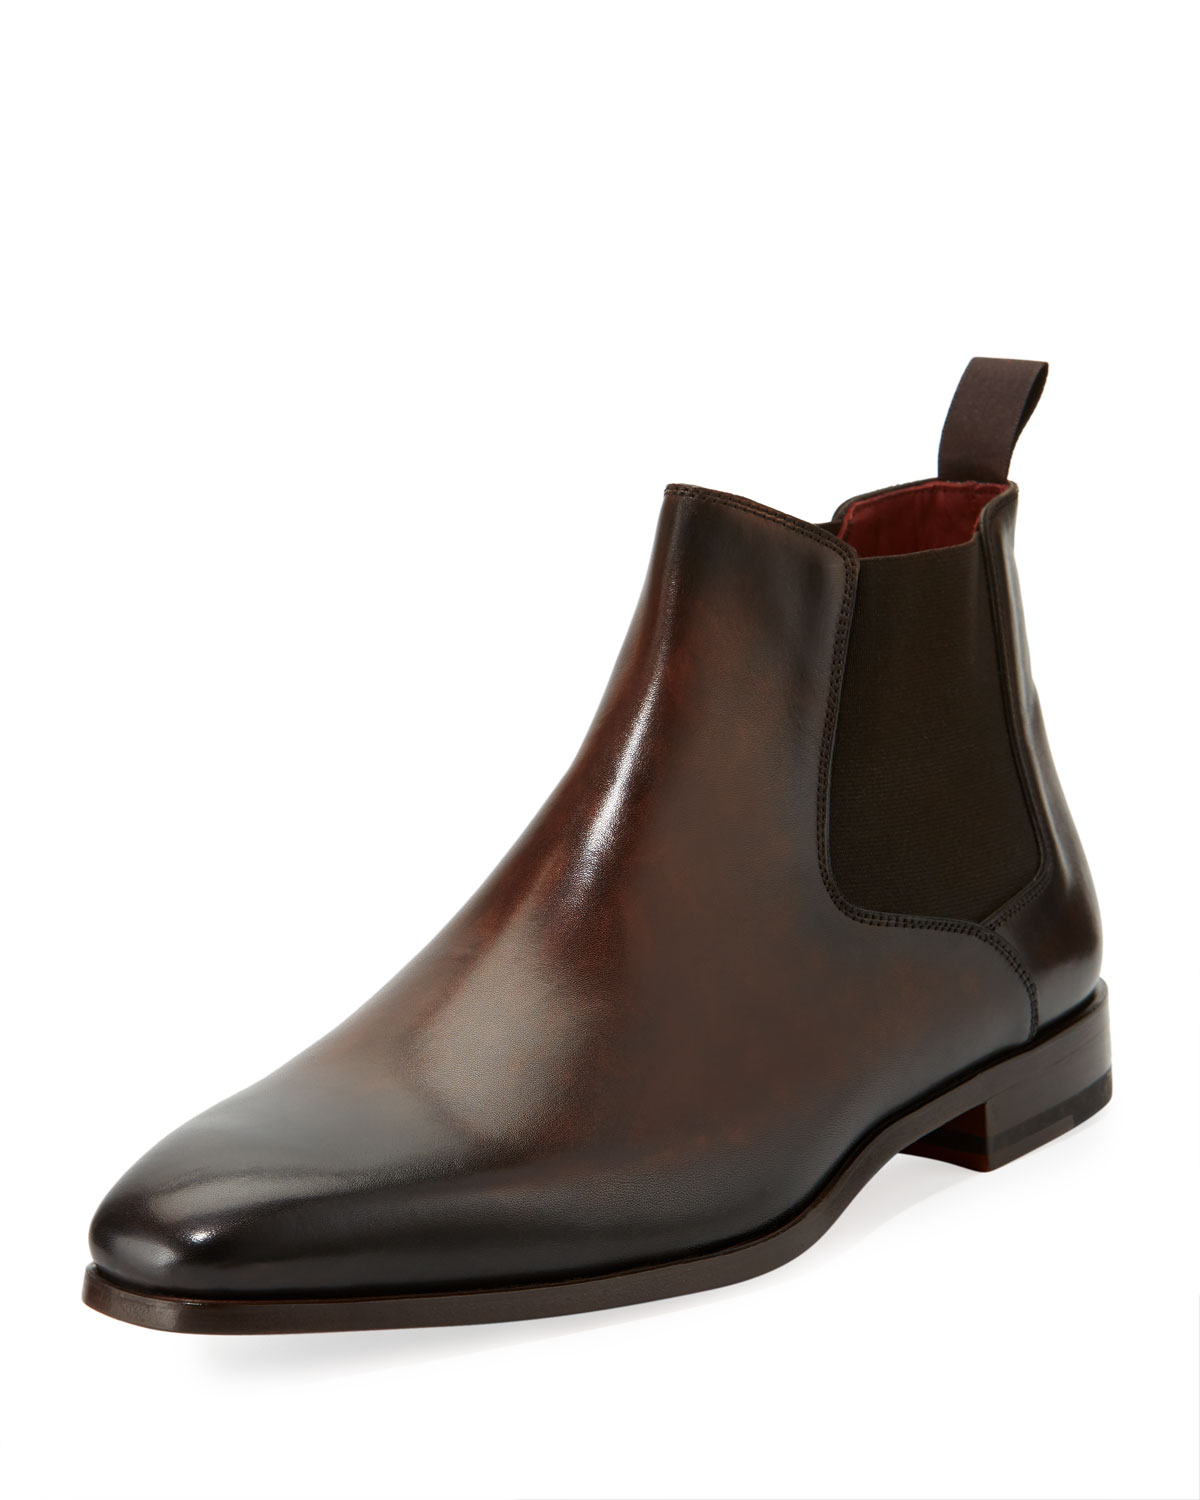 outlet for sale on sale really cheap Magnanni for Neiman Marcus Leather Chelsea Boot, Dark Brown ...